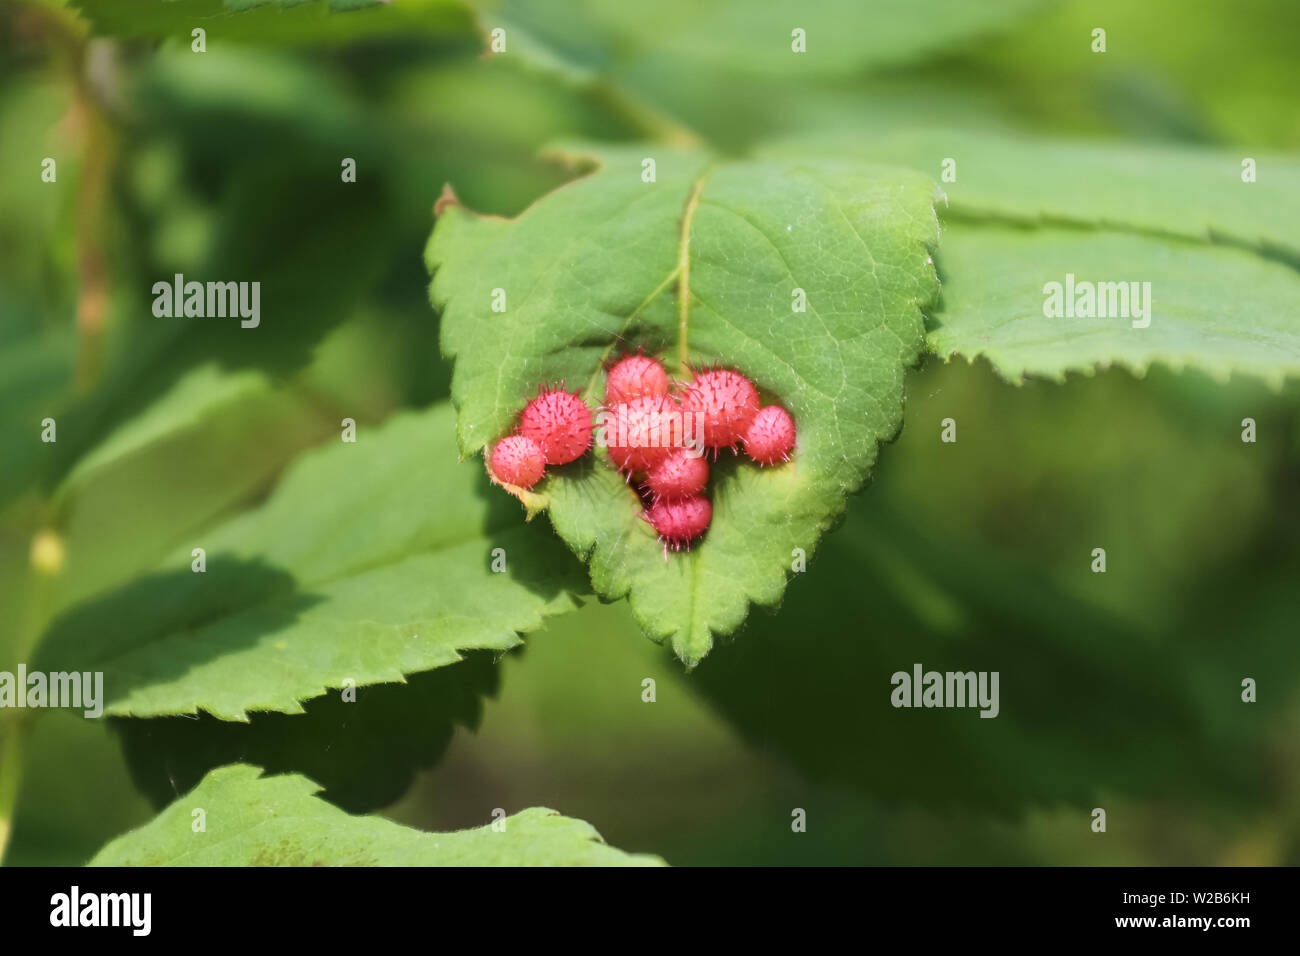 Pink Wild Rose Galls on green leaves - Stock Image